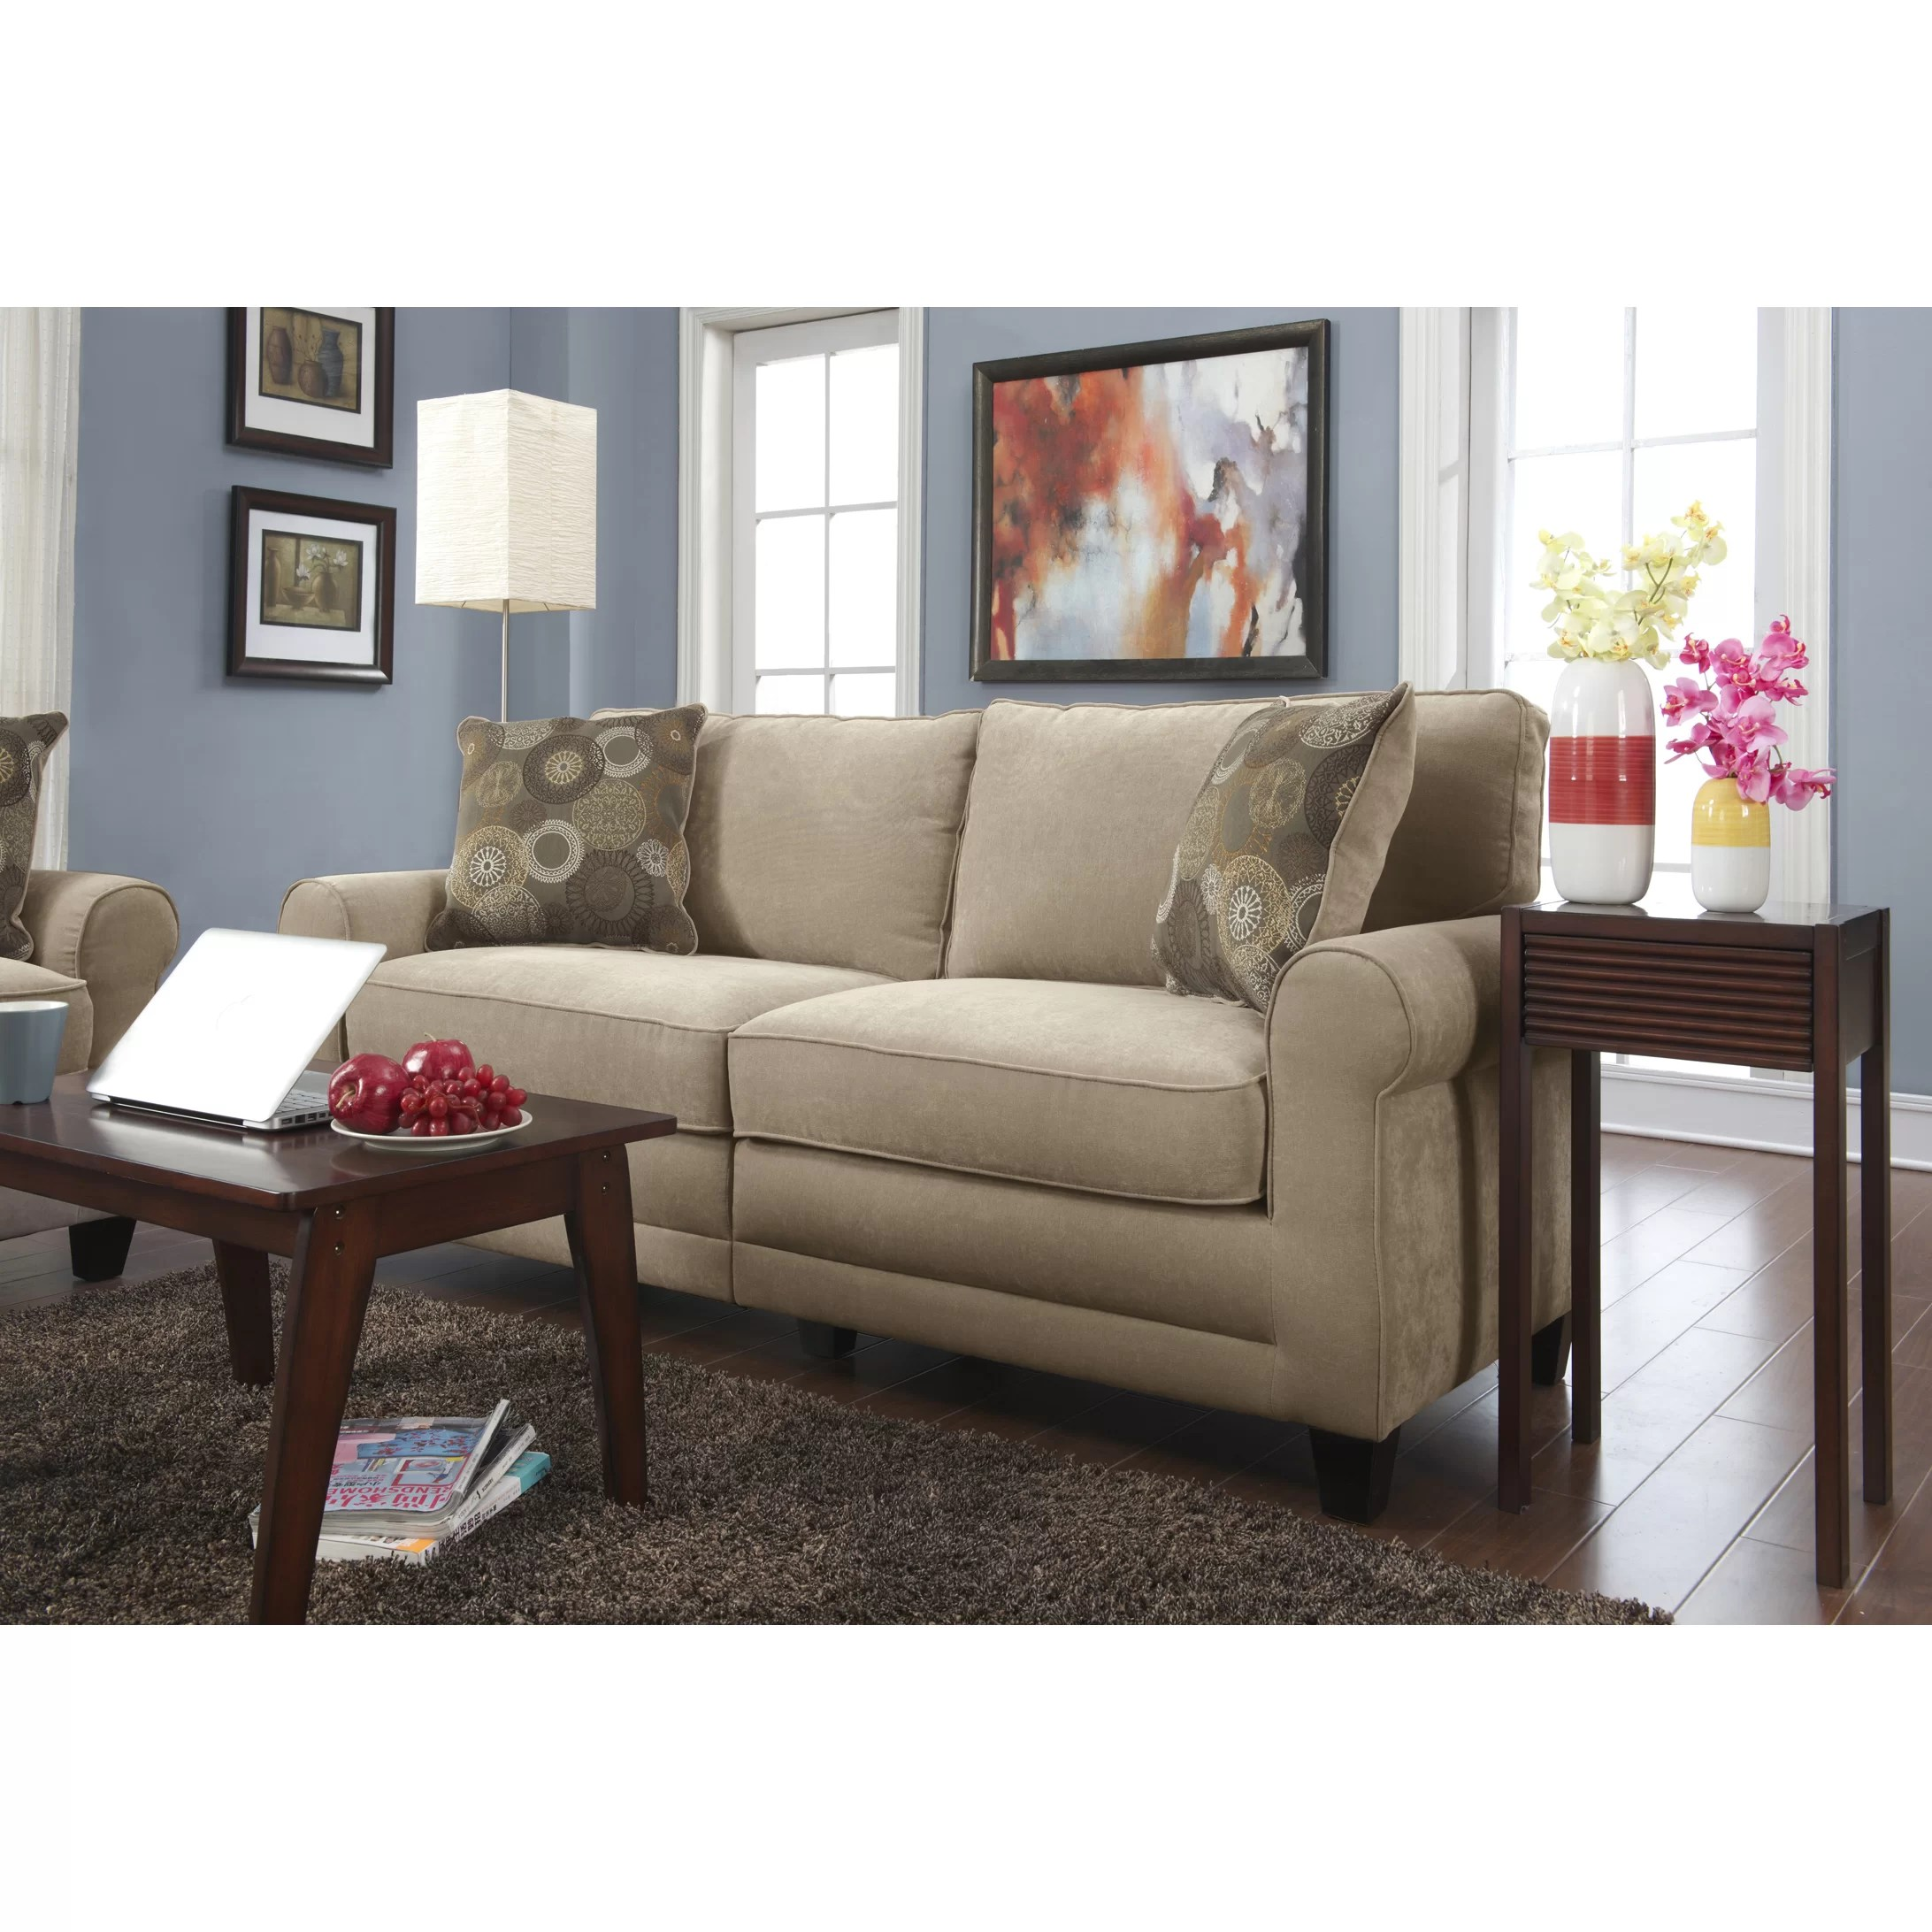 Serta at Home Copenhagen Sofa  Reviews  Wayfair